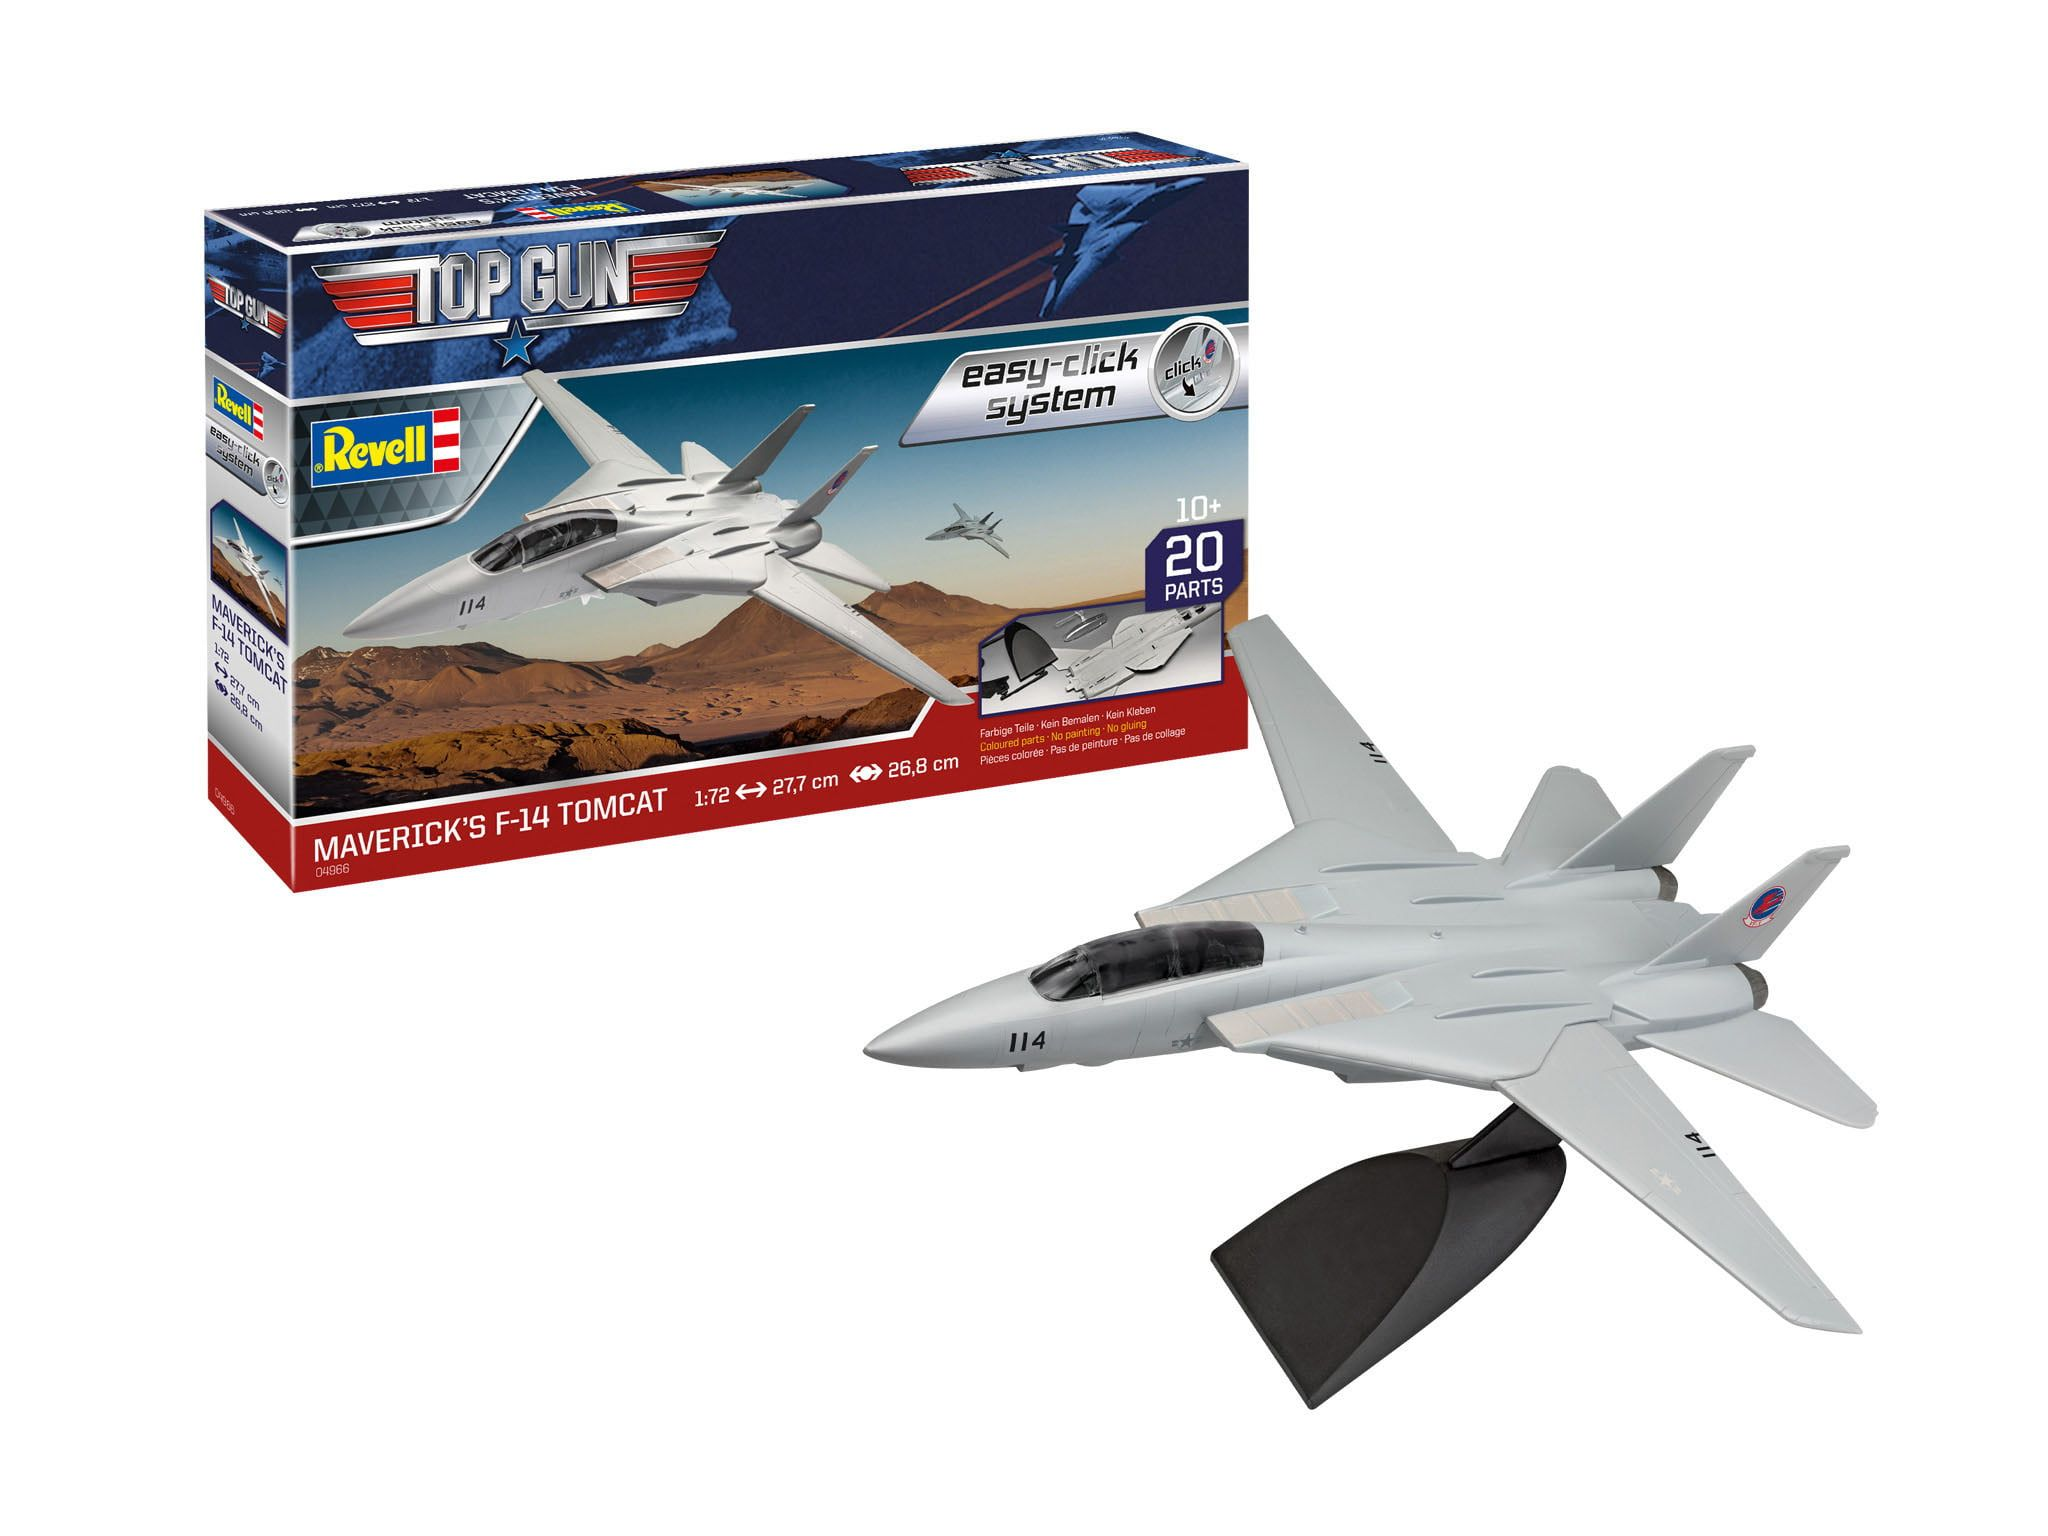 Revell Top Gun Mavericks F-14 Tomcat